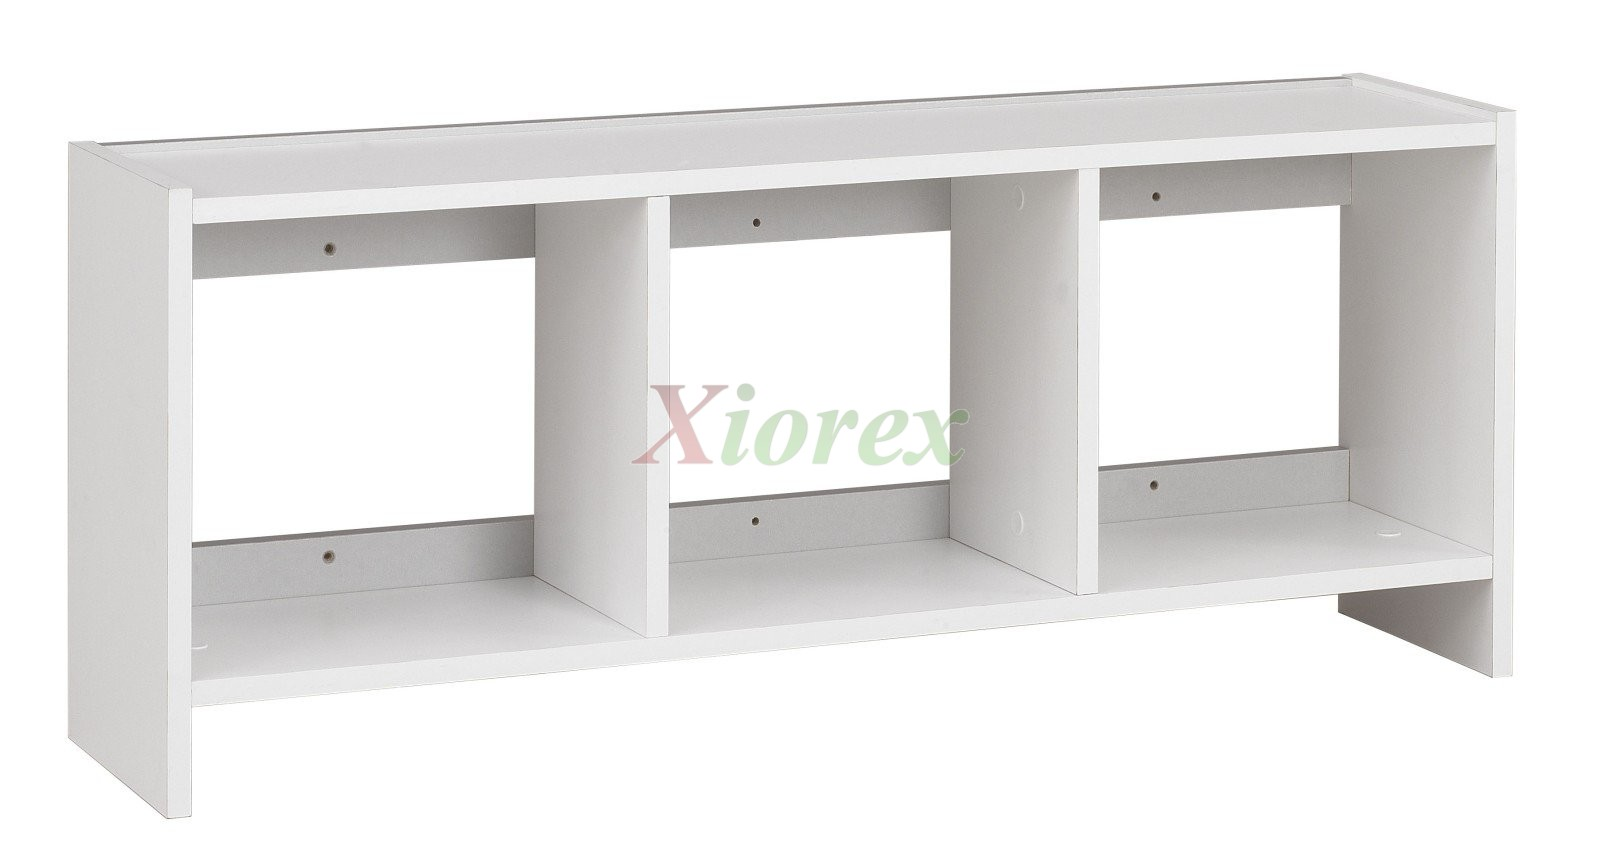 Desk Top Shelf Furniture For Gami Moov Bunk And Bed Sets Xiorex